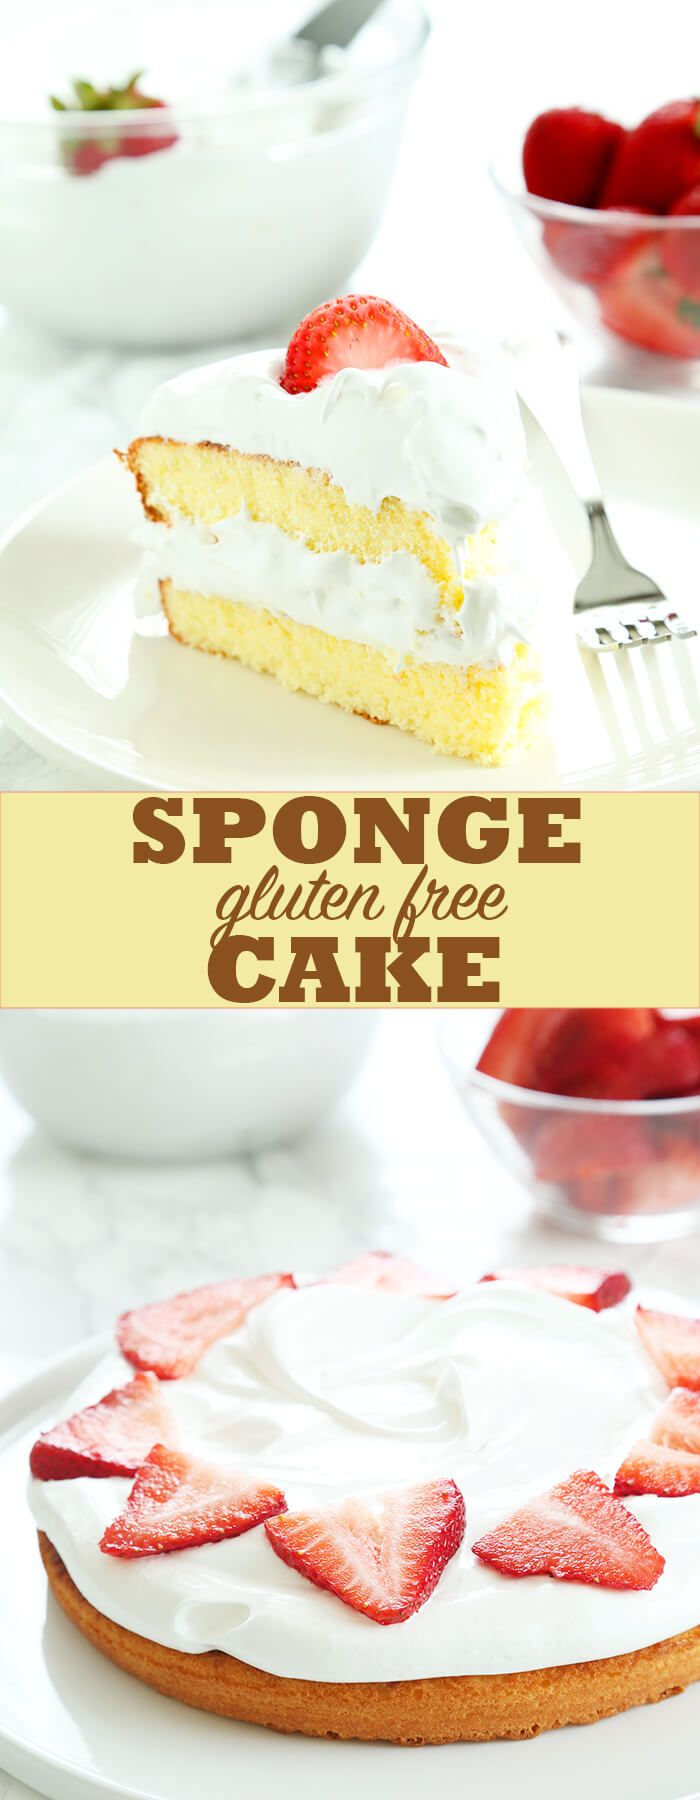 Light and airy gluten free sponge cake. Serve it with fresh whipped cream and strawberries on a hot day. Perfect for Memorial Day, or any day!